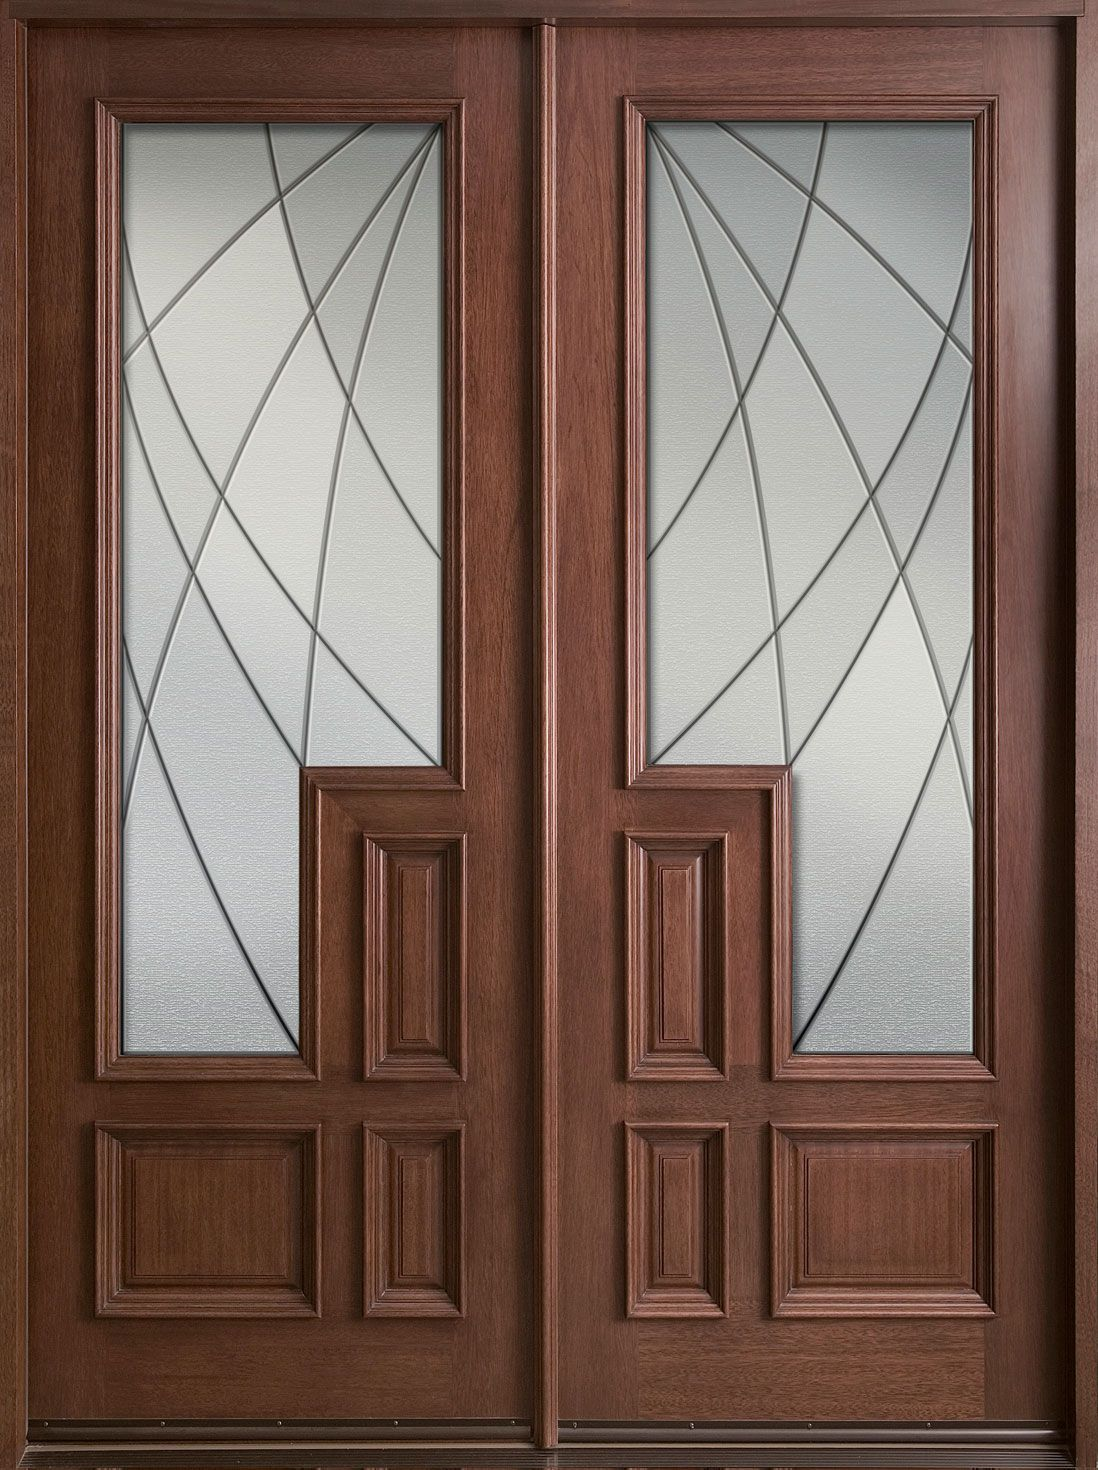 Inspiring double fiberglass entry door as furniture for for Wooden entrance doors